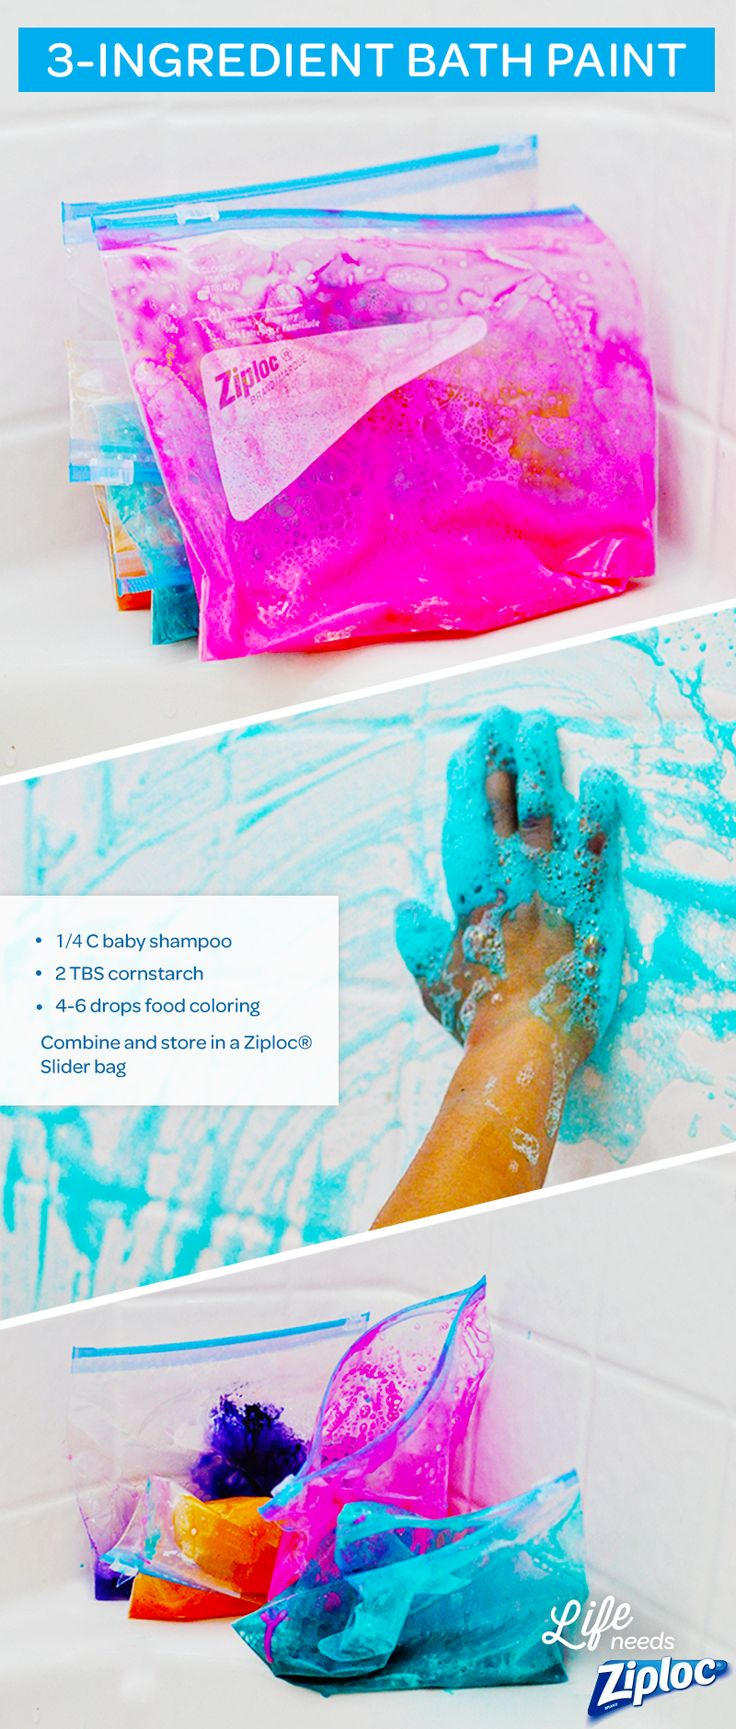 Super simple bath paints using 3 ingredients. Just mix up baby-safe shampoo, cornstarch, and food coloring in a Ziploc® Slider bag. This is such an awesome way to get your kids to enjoy bathtime and wind down at the end of the day. Plus, the slider bag keeps it from making a mess or drying out between baths.